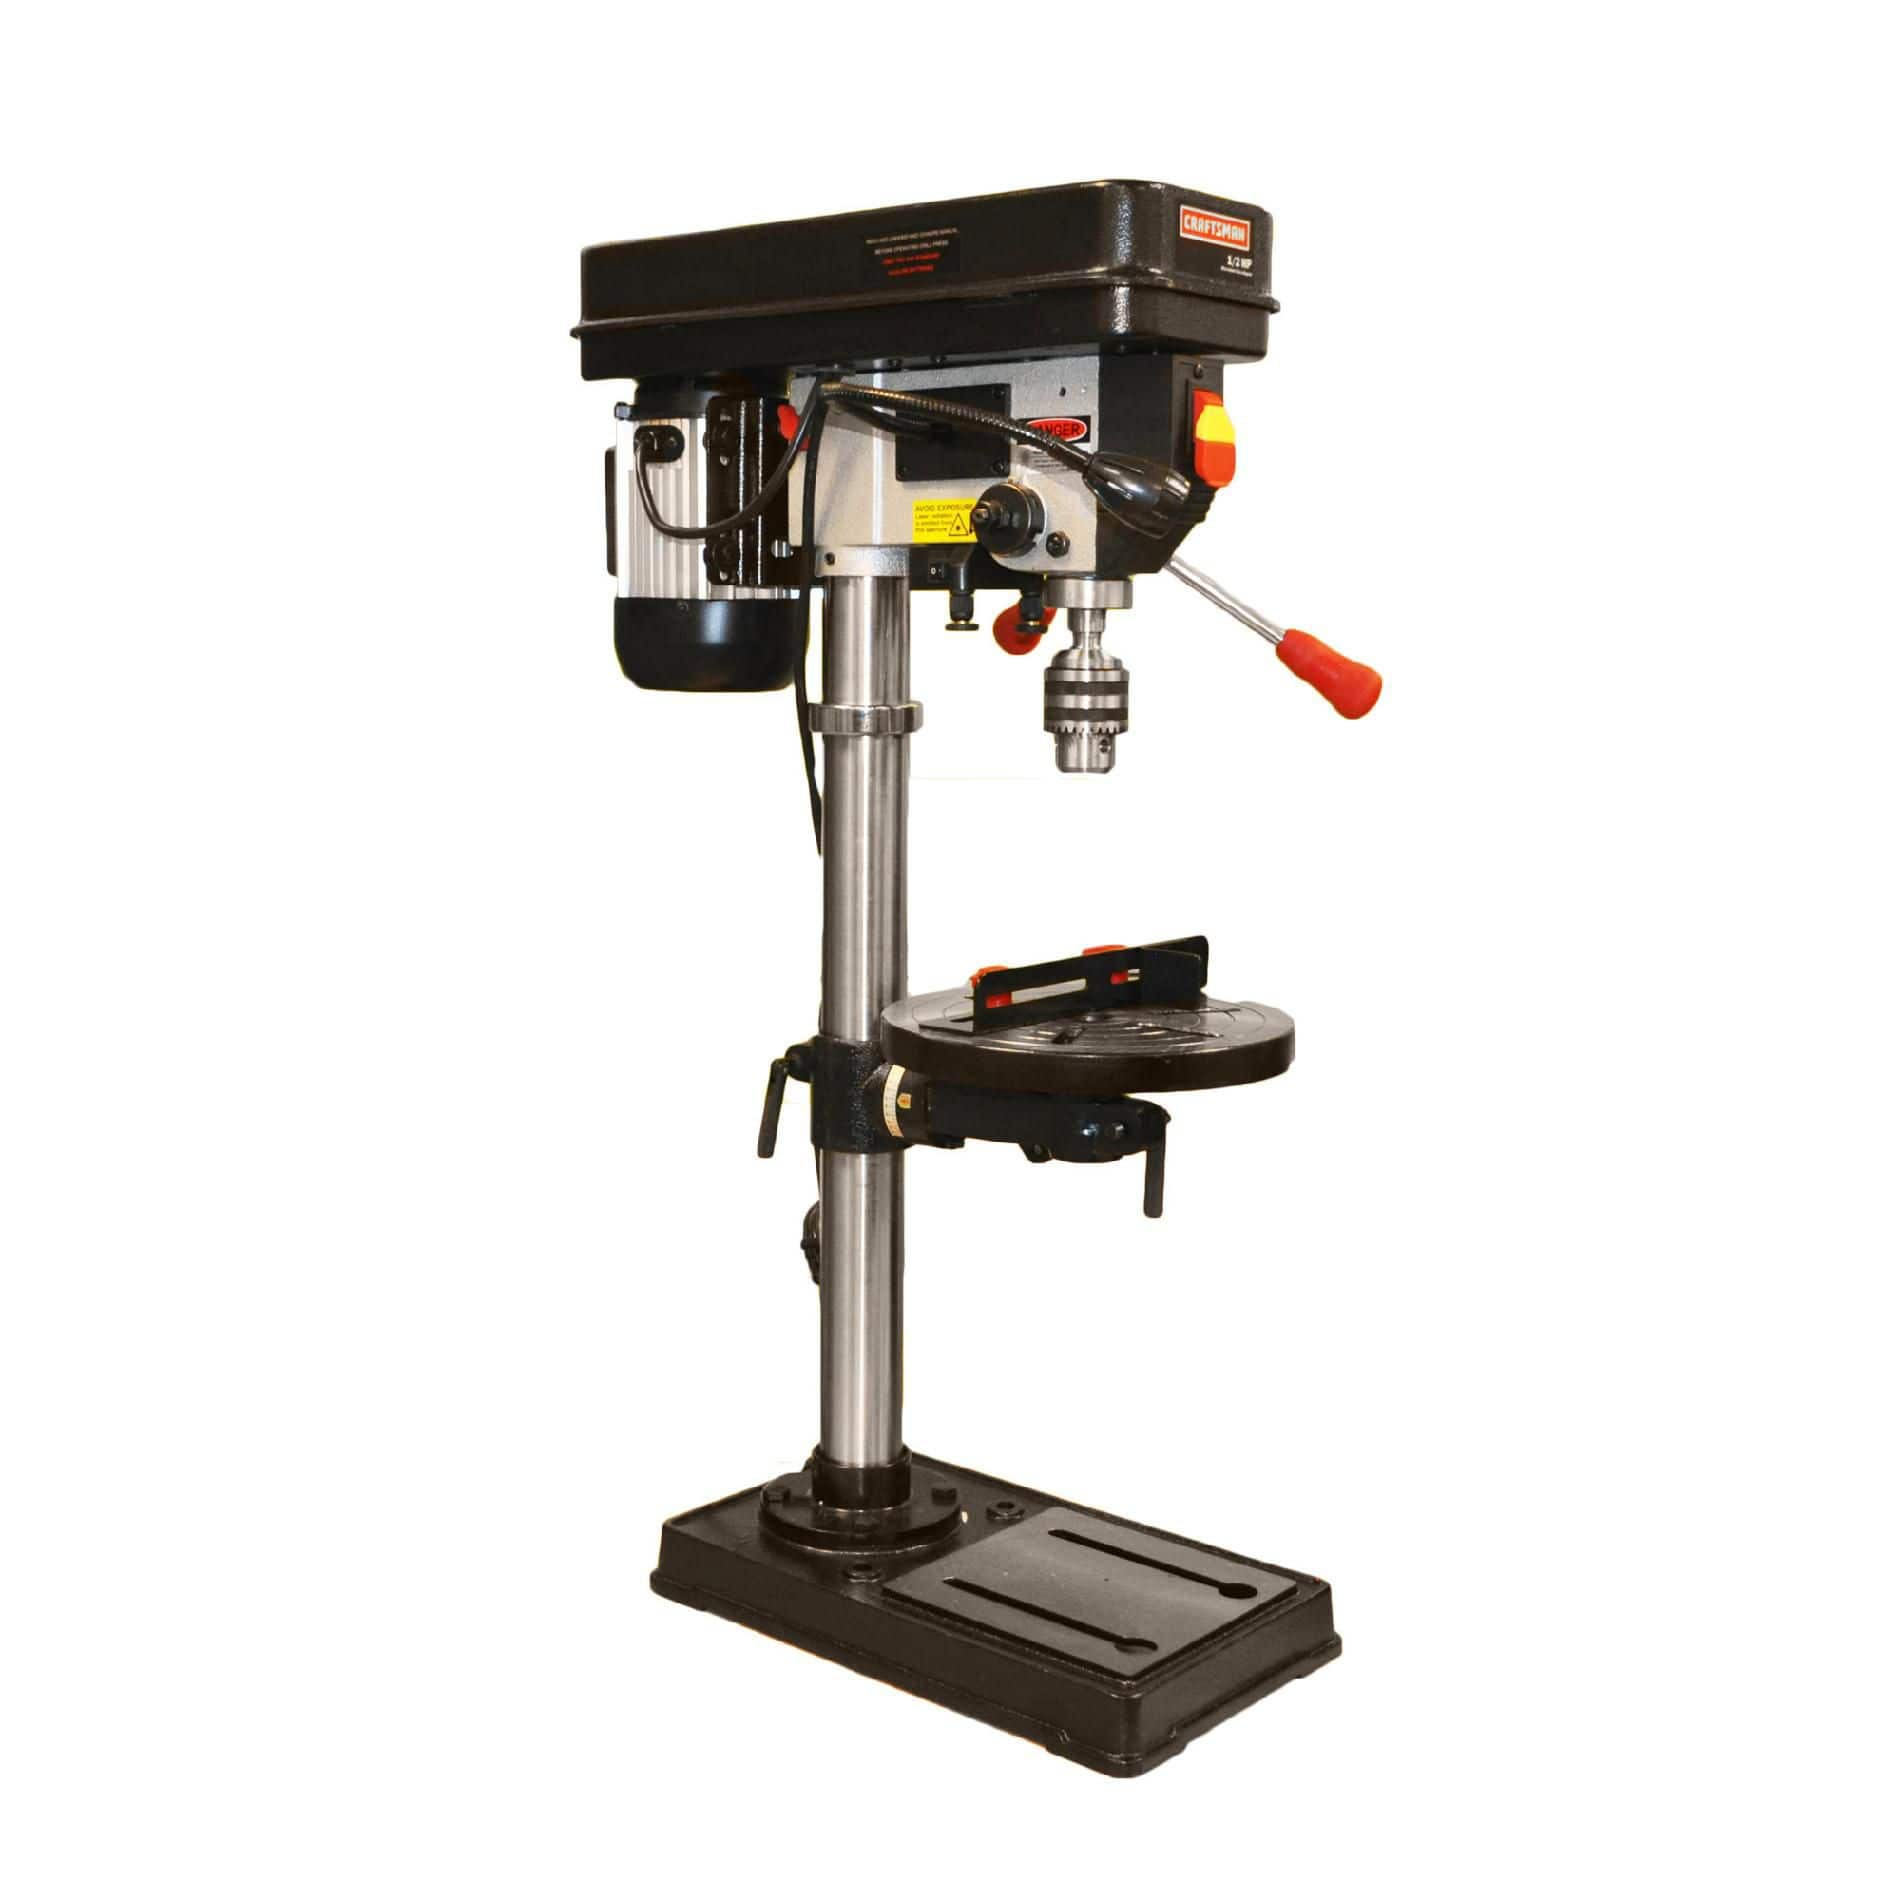 """Craftsman 12"""" Drill Press with Guiding Laser and LED Light $179.94 and free shipping"""